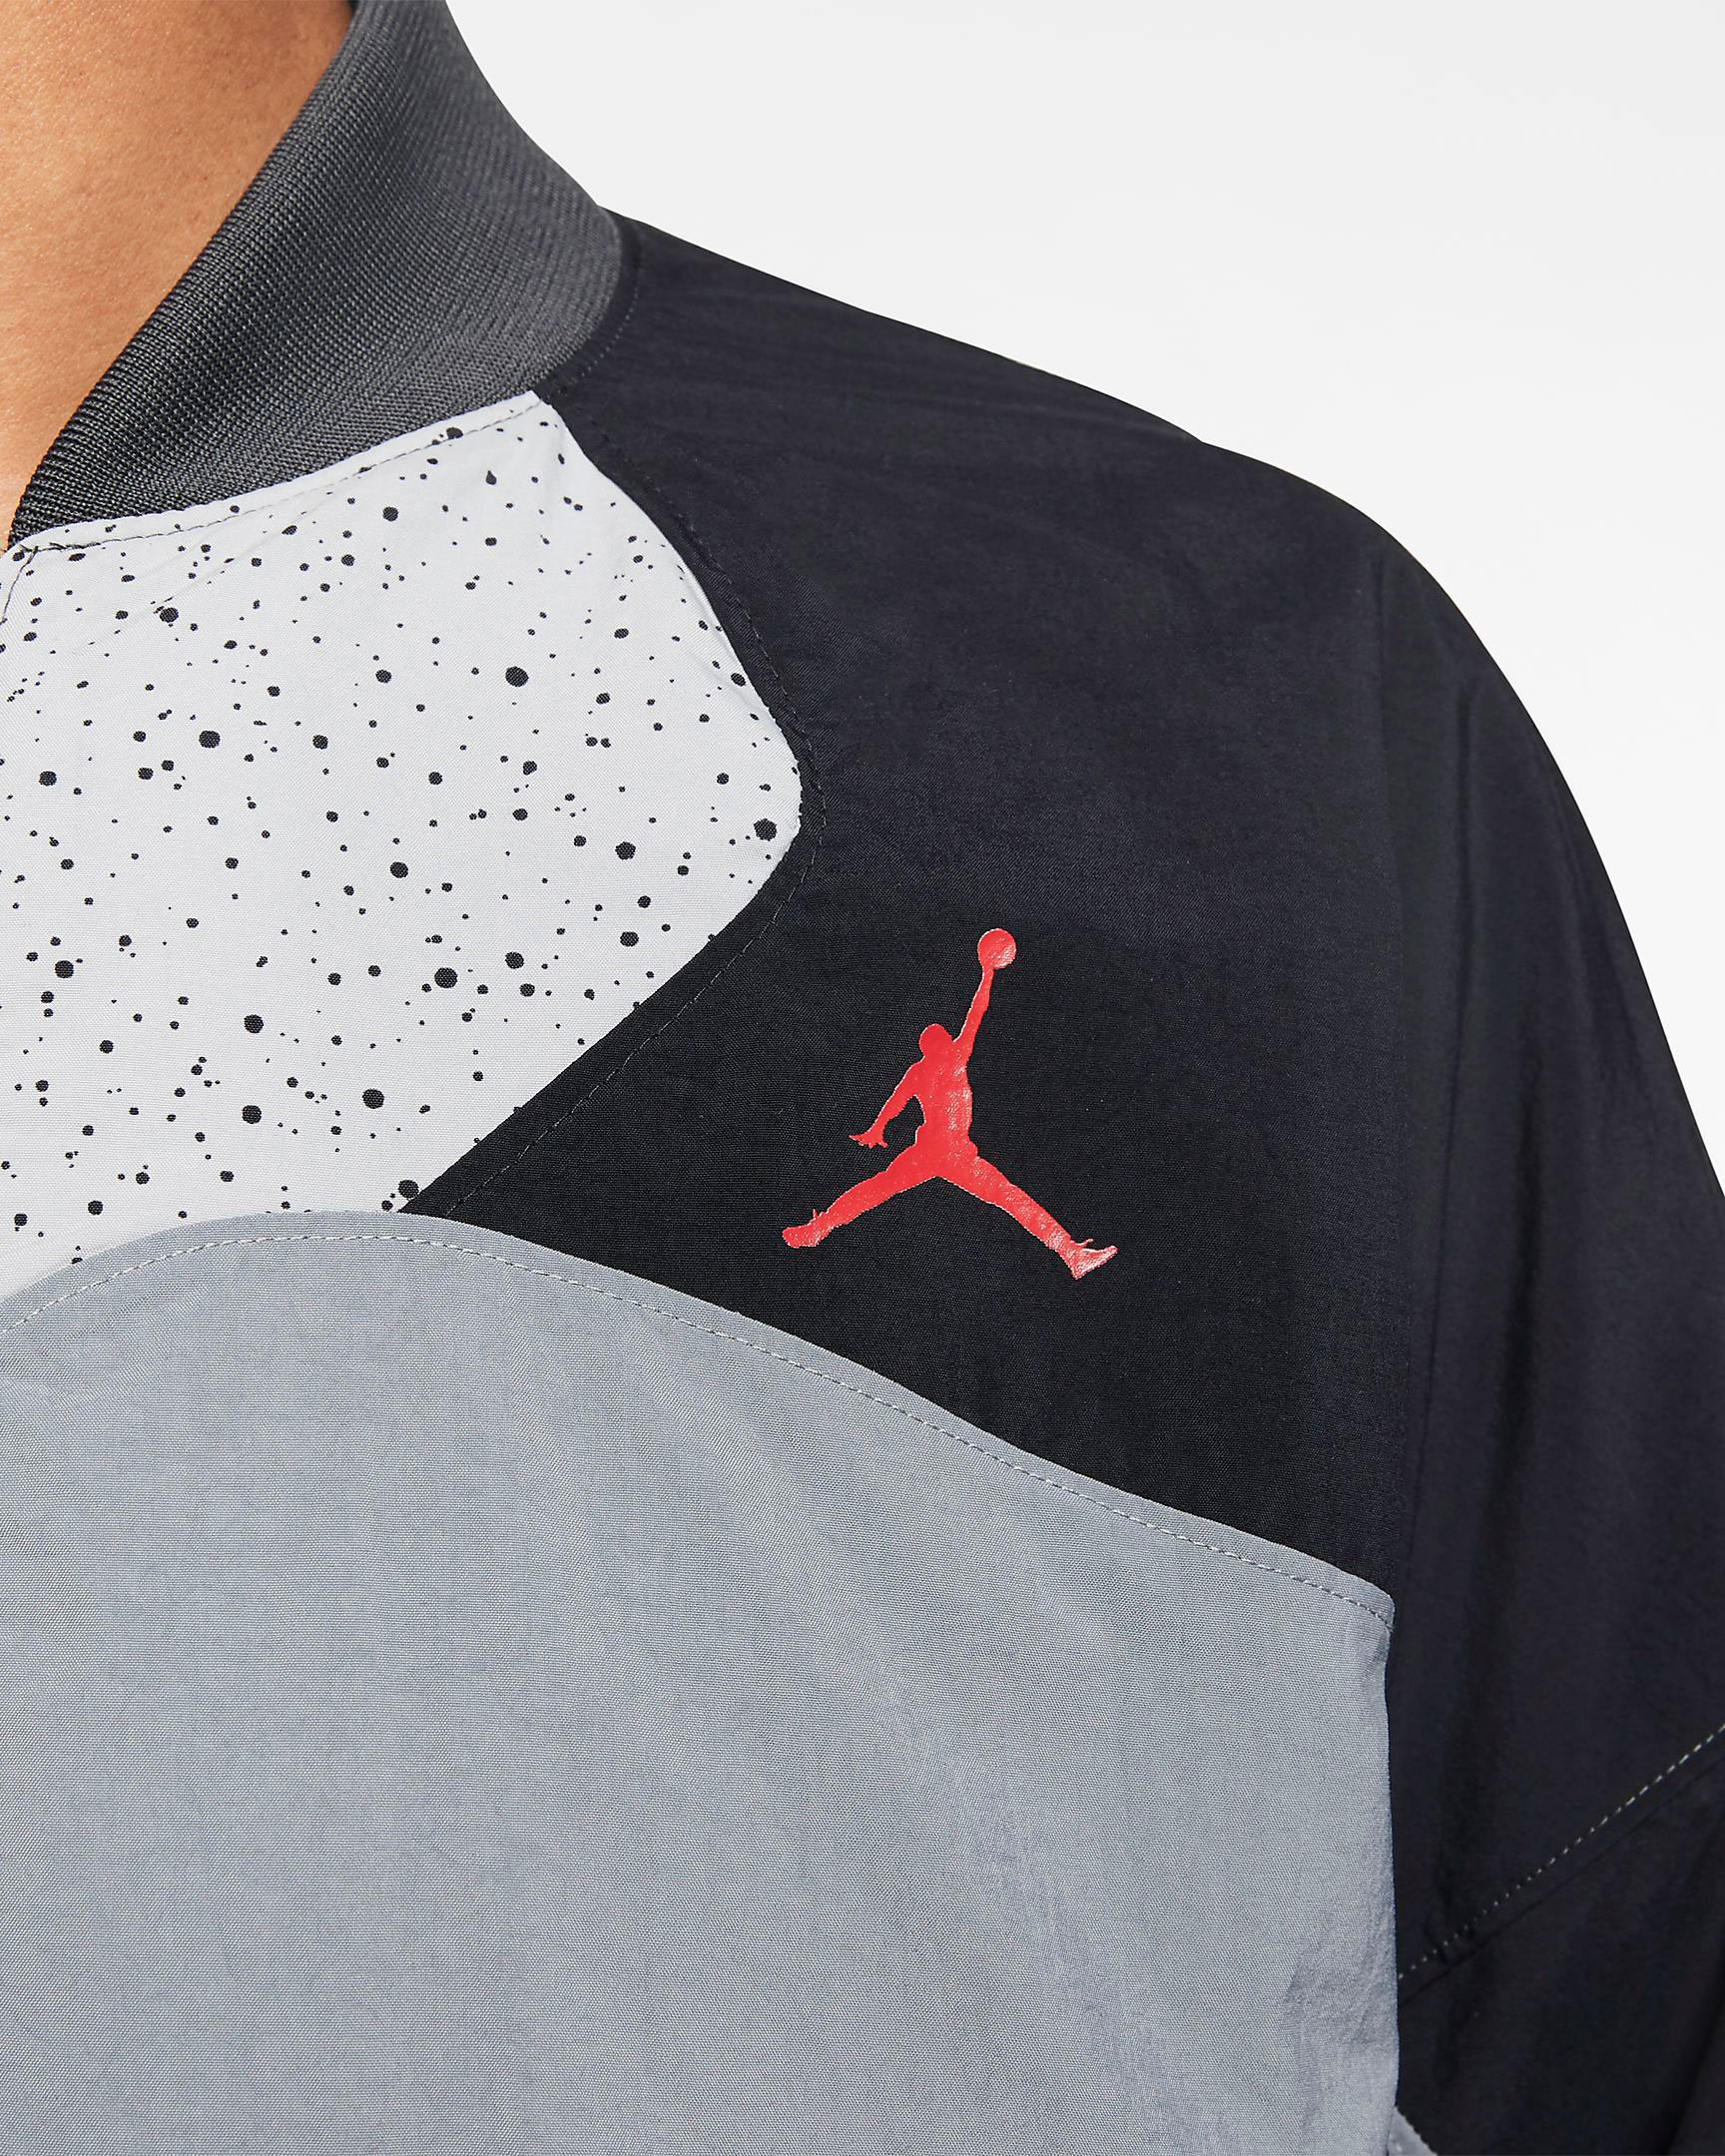 air-jordan-4-what-the-jacket-3